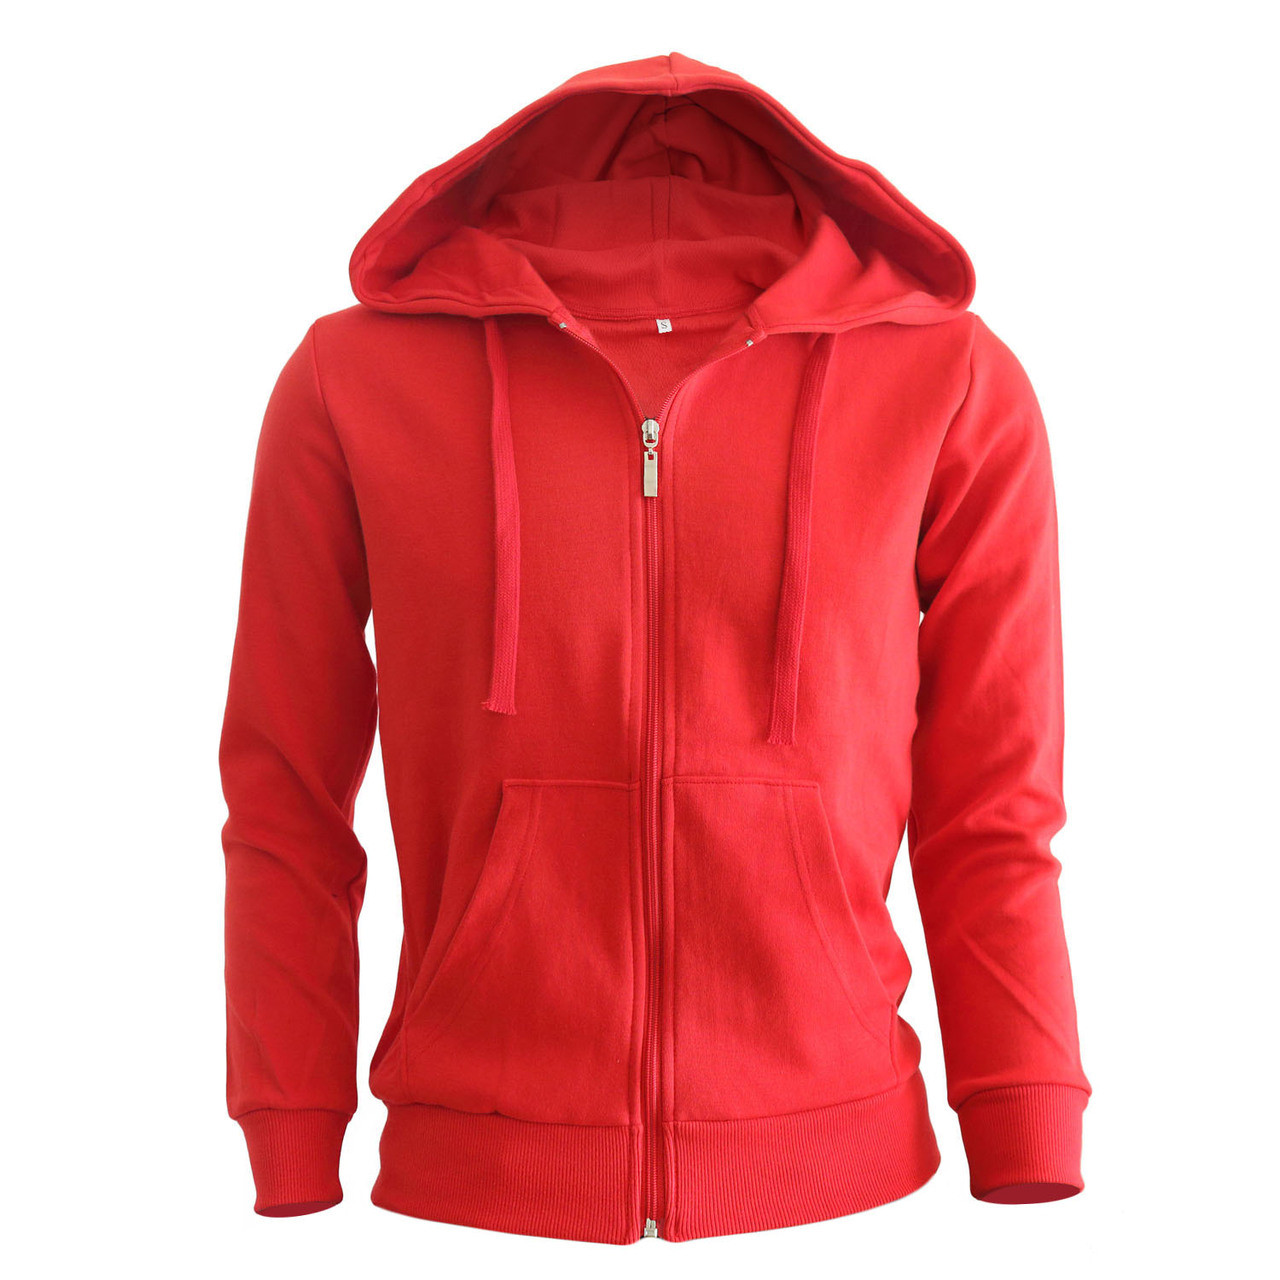 Find great deals on eBay for Red Hoodie in Men's Sweats and Hoodies. Shop with confidence.